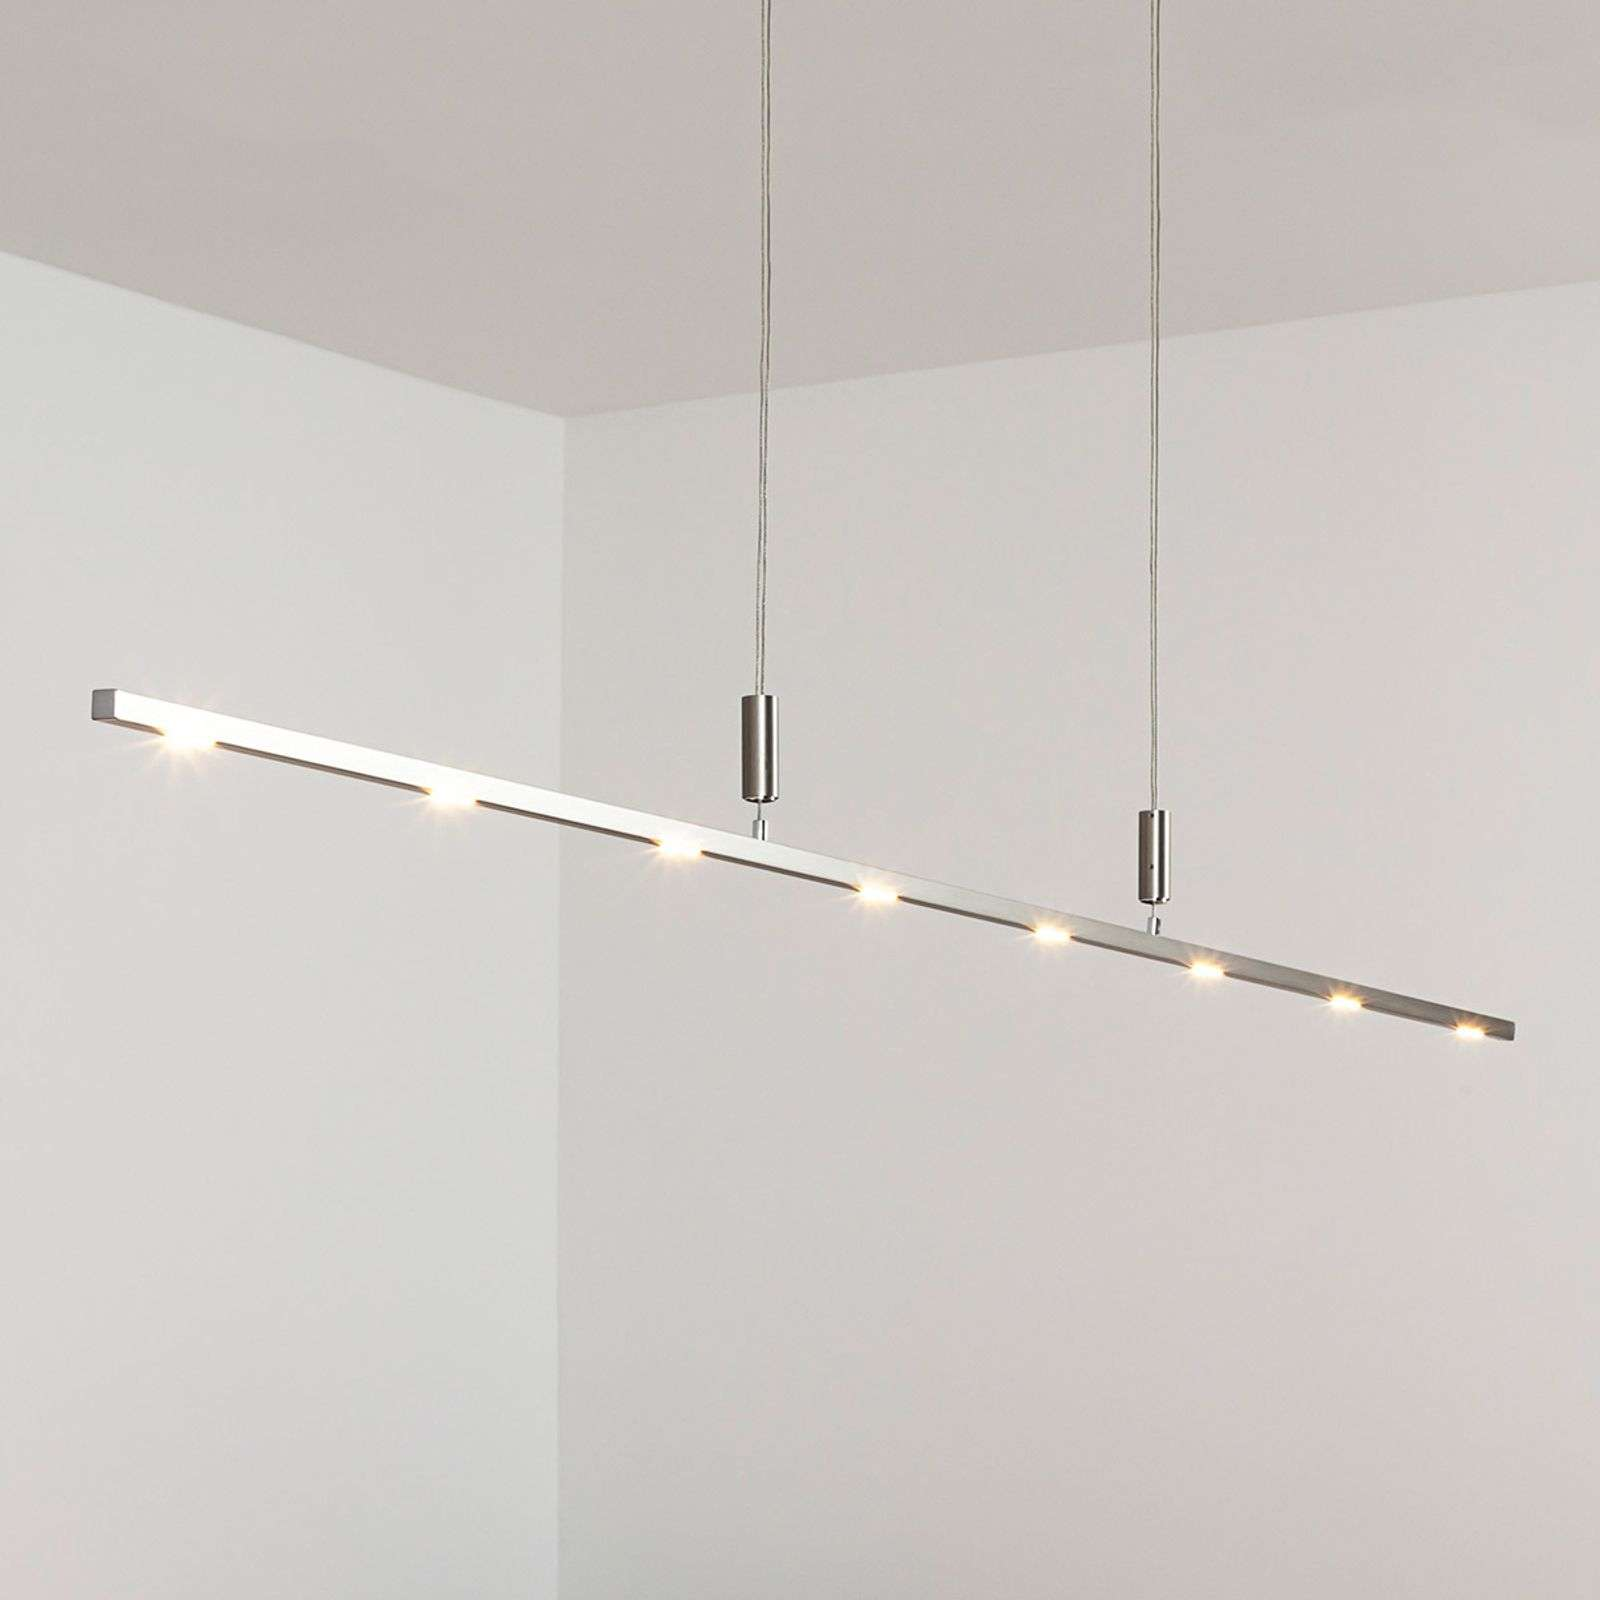 Lámpara LED suspendida Tolu 180 cm, intens. regul.